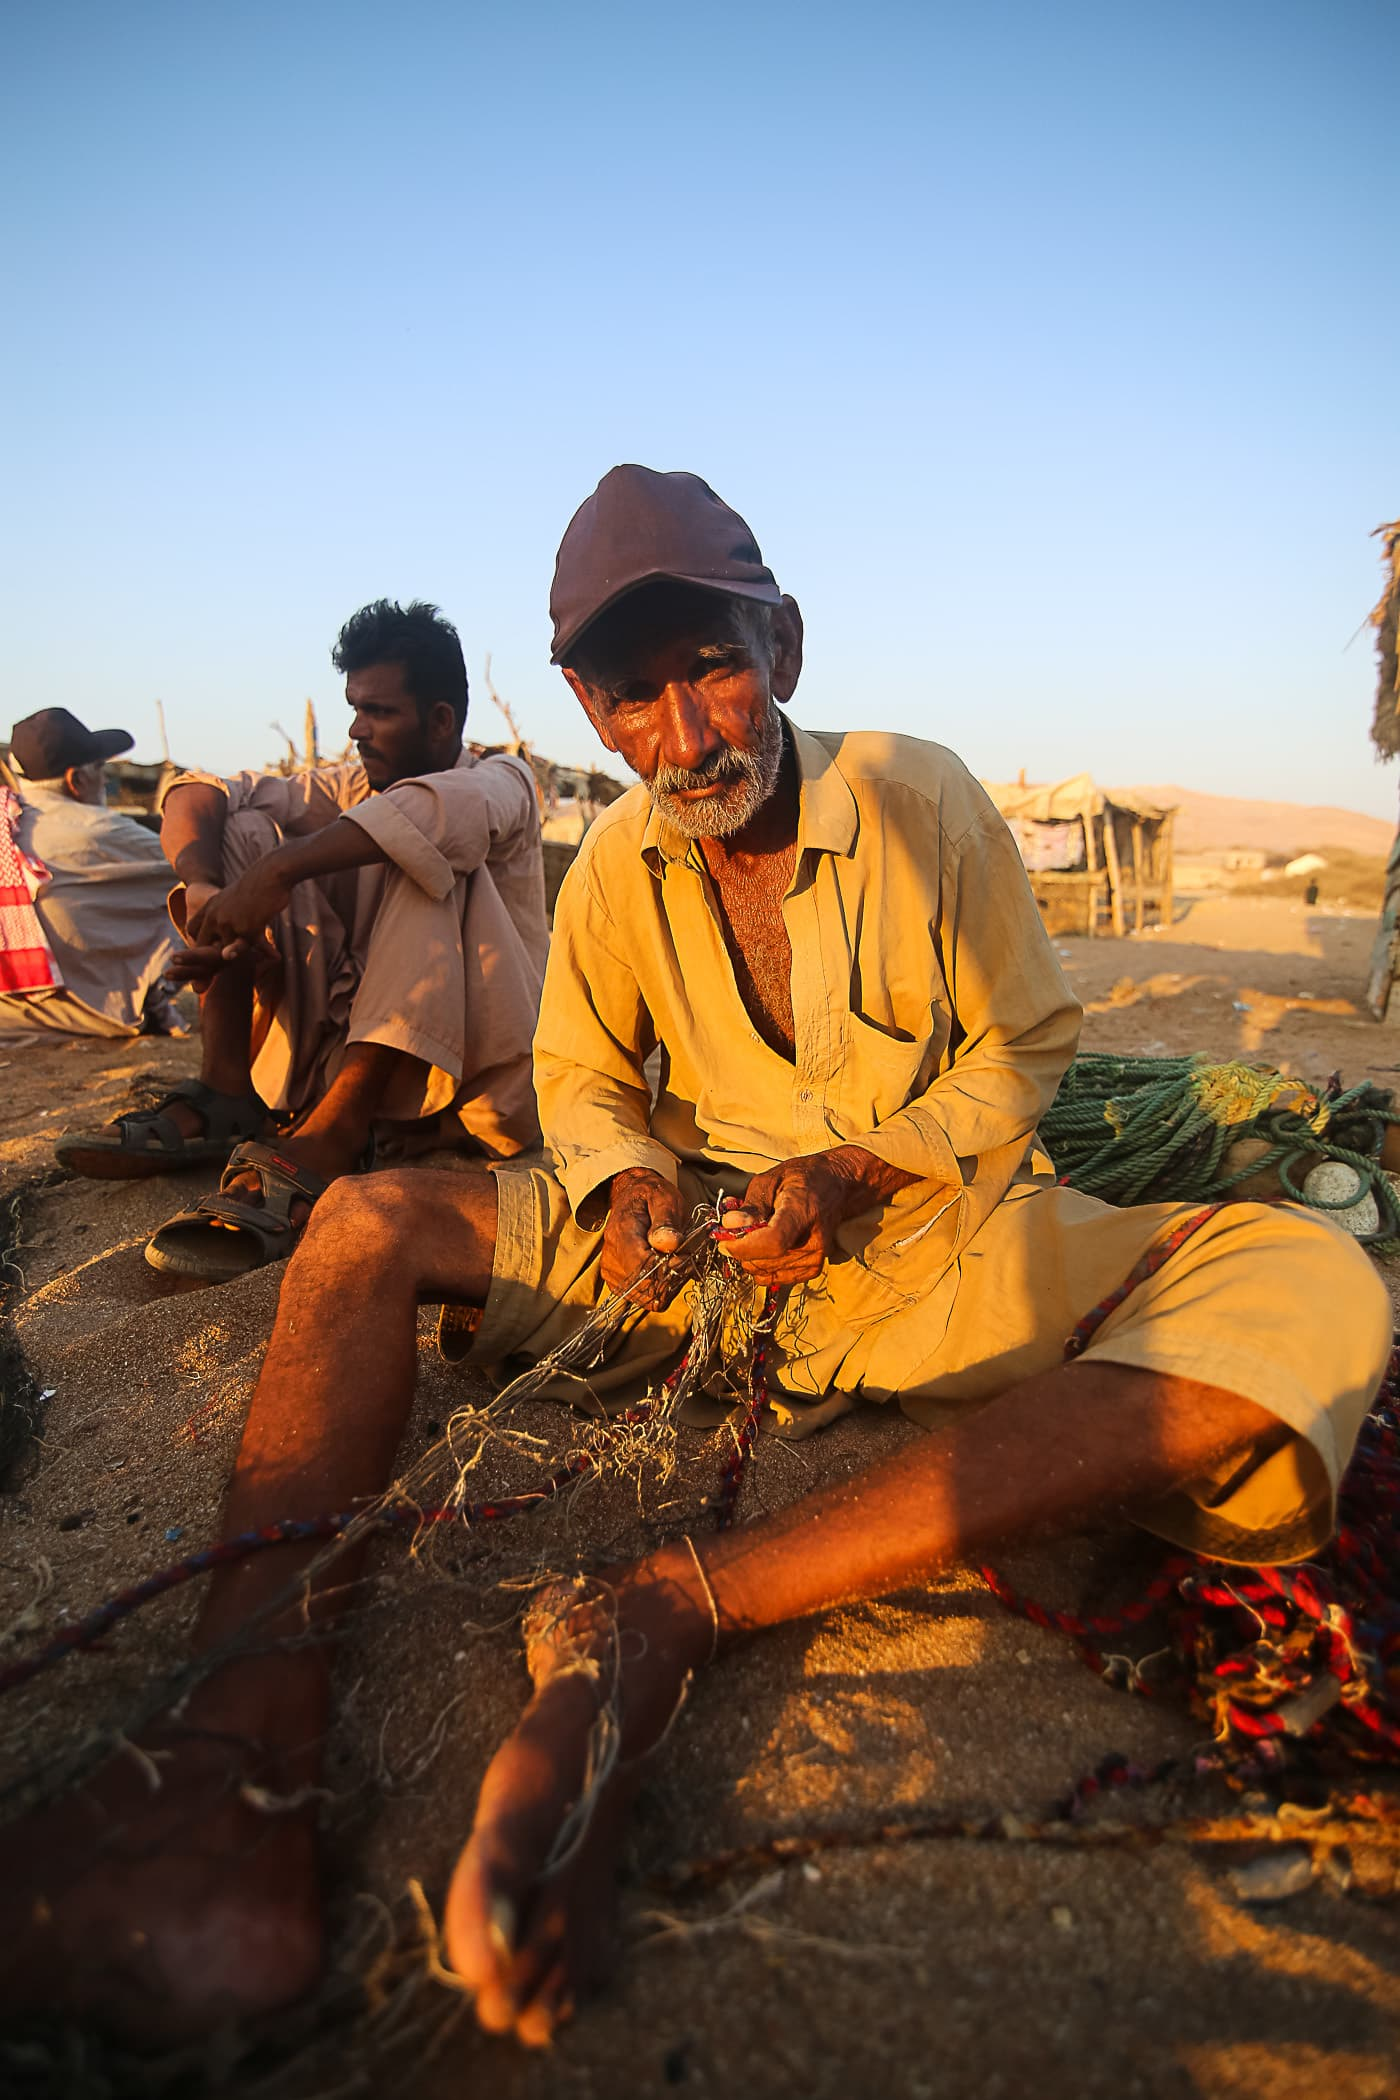 Sitting in the golden light of the setting sun, Chacha Majeed repairs old and damaged nets.